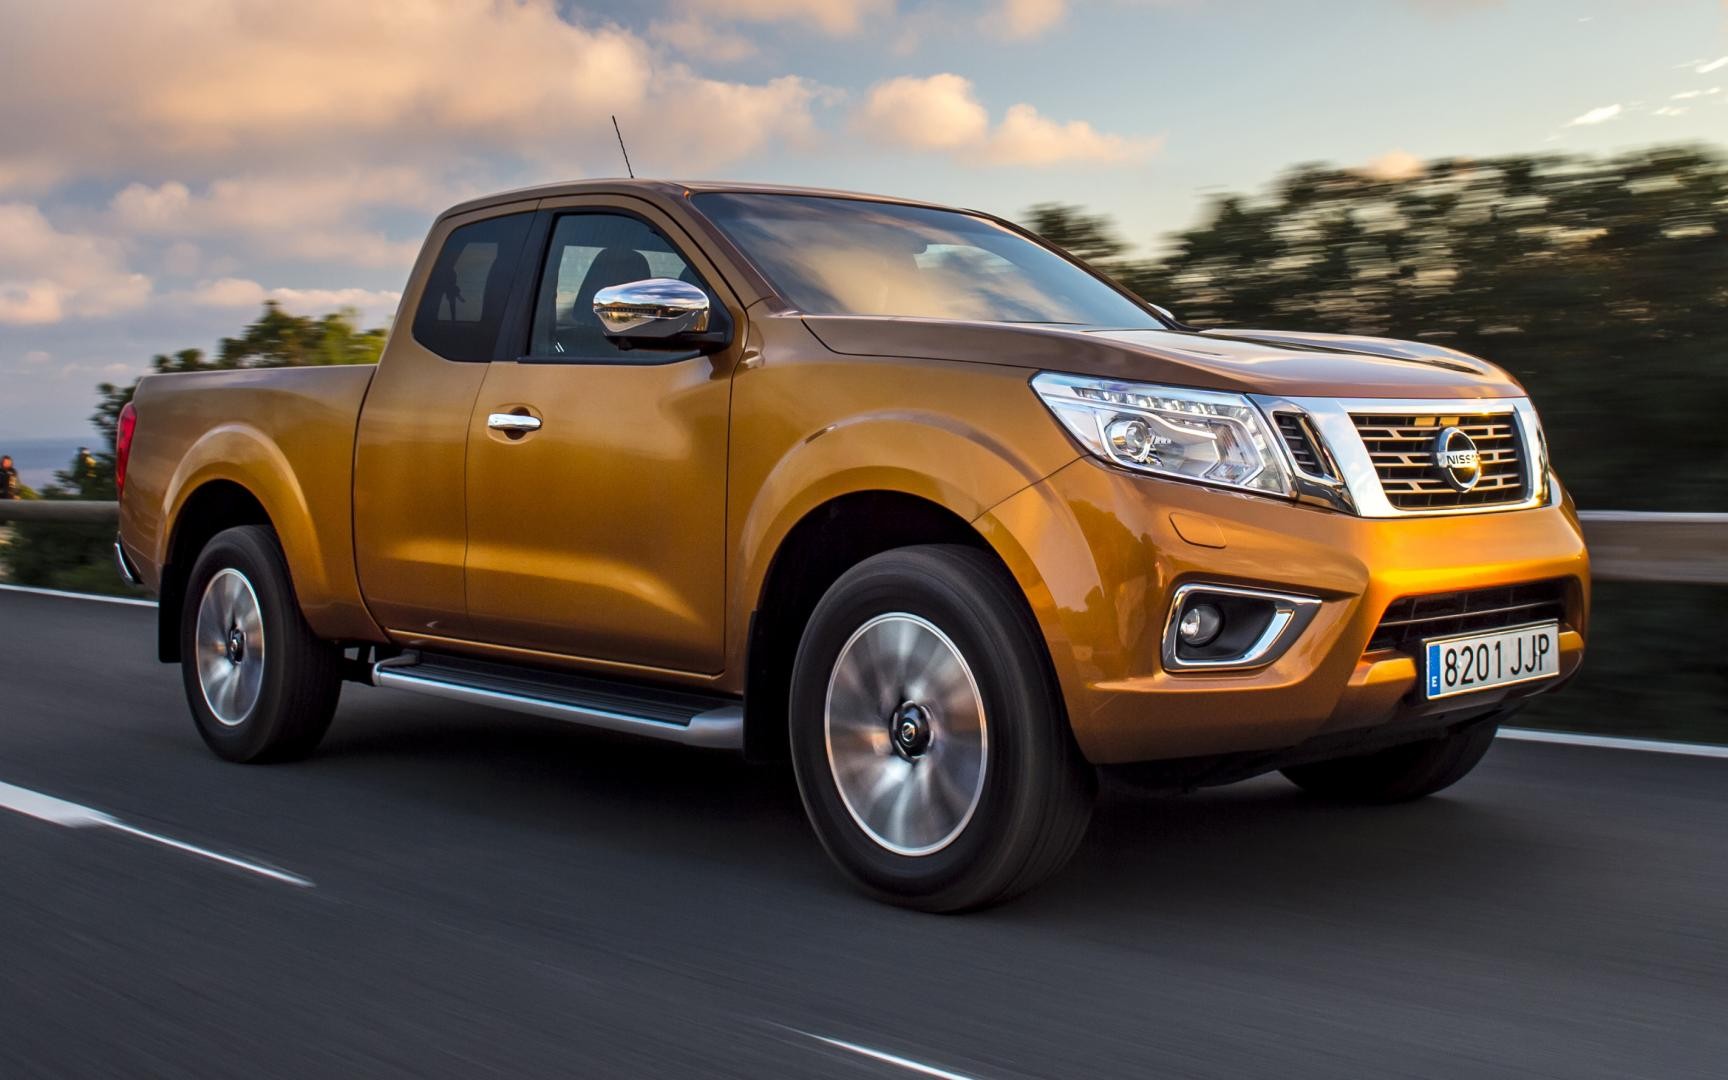 nissan np300 navara king cab 2016 test en specificaties topgear. Black Bedroom Furniture Sets. Home Design Ideas